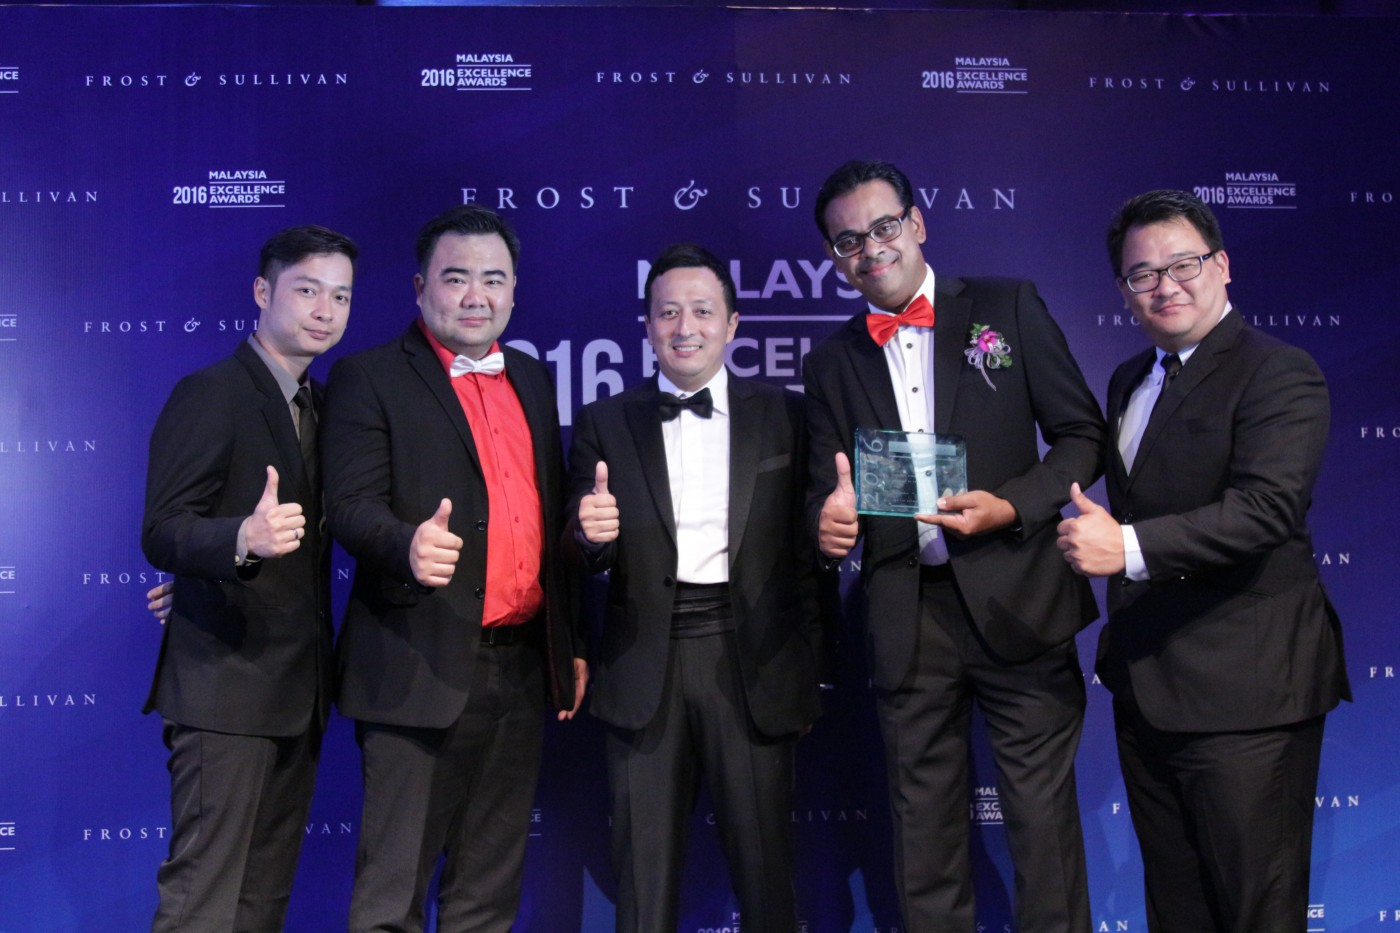 redONE ACHIEVES HAT-TRICK AS MVNO SERVICE PROVIDER OF THE YEAR - Low Han Ben (Head of Sales, redONE); Ben Teh (CSO, redONE); Hazmi Yusof (Managing Director, Frost & Sullivan); Ameen Abdullah (CEO, redONE); Tee Yew Yaw (COO, redONE)